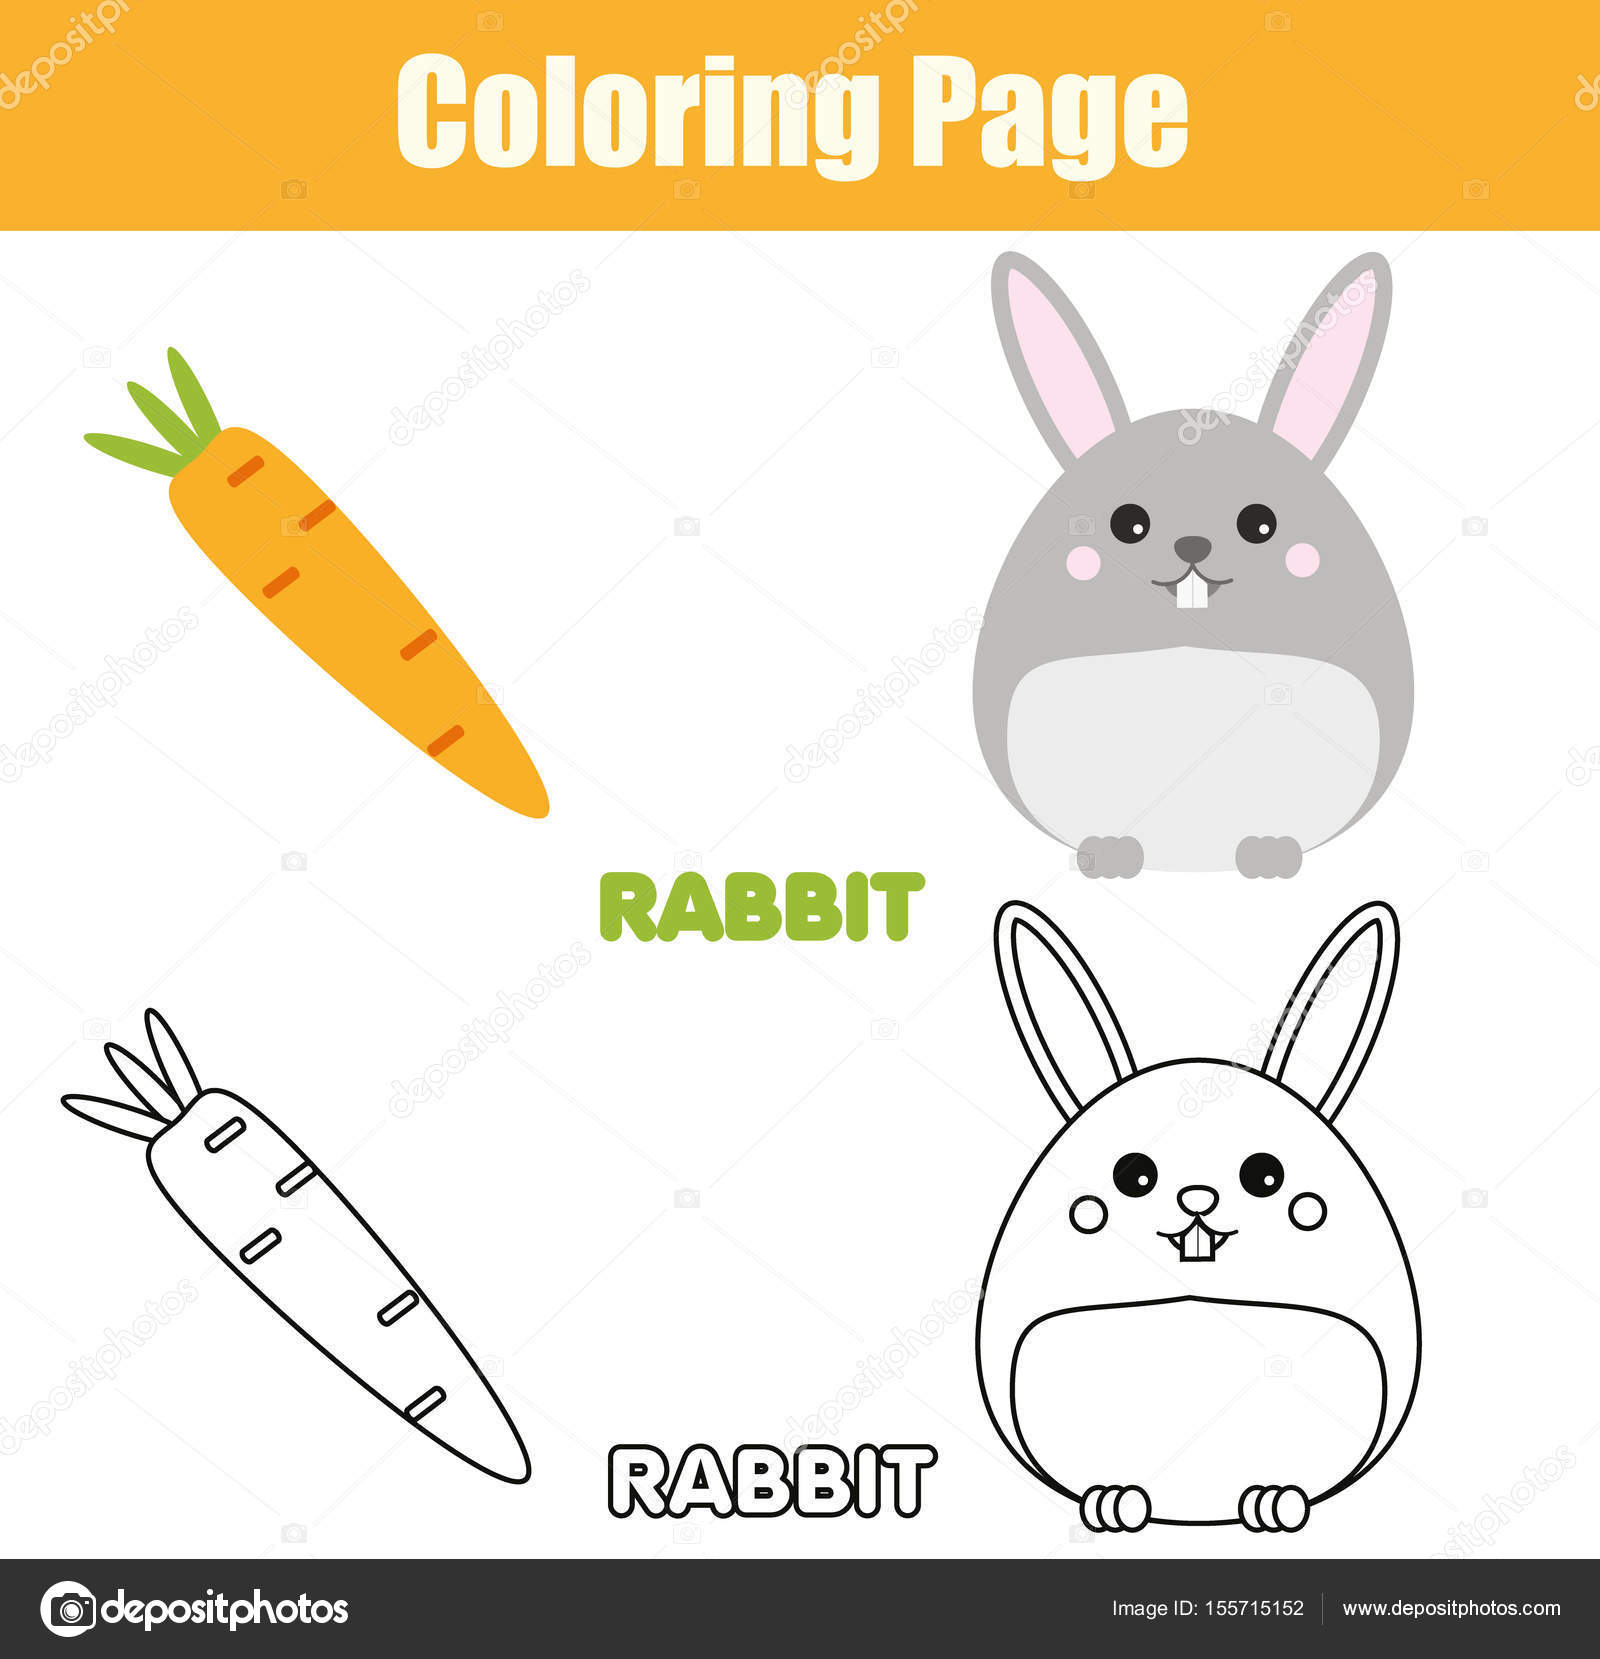 1600x1659 Coloring Page With Rabbit, Bunny Character. Educational Game